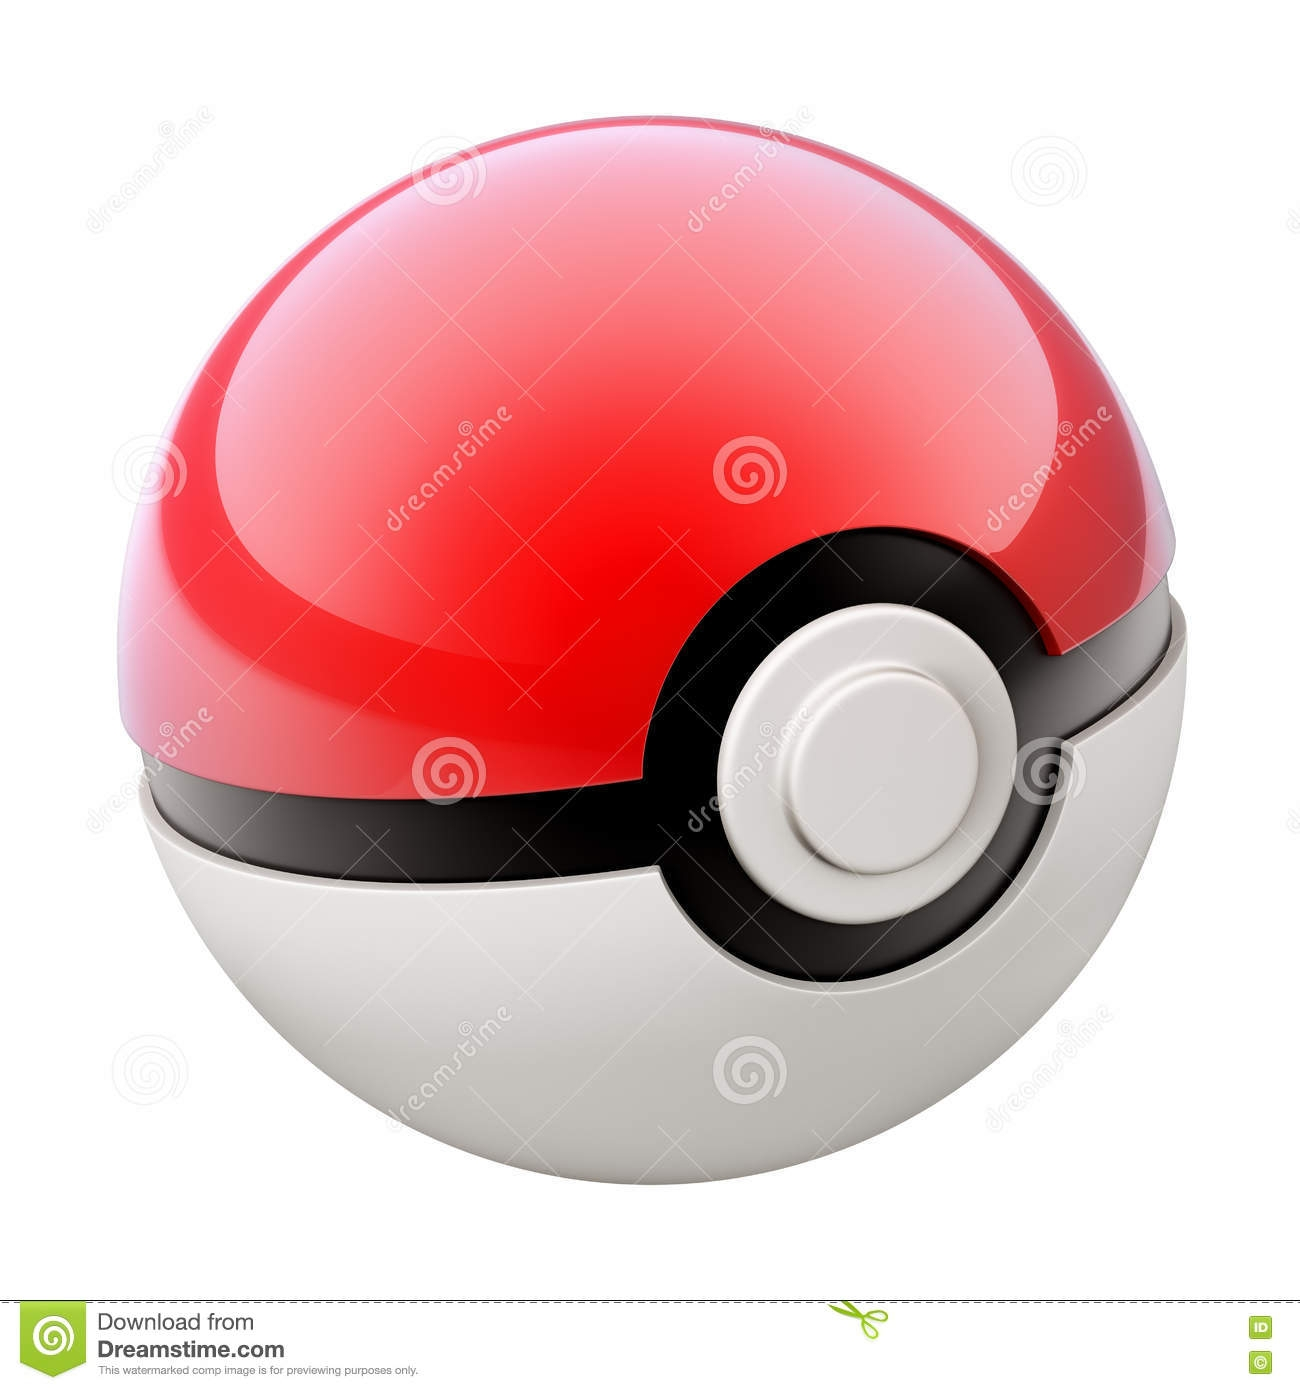 pokeball coloring pages - imagem editorial bola de pokemon image